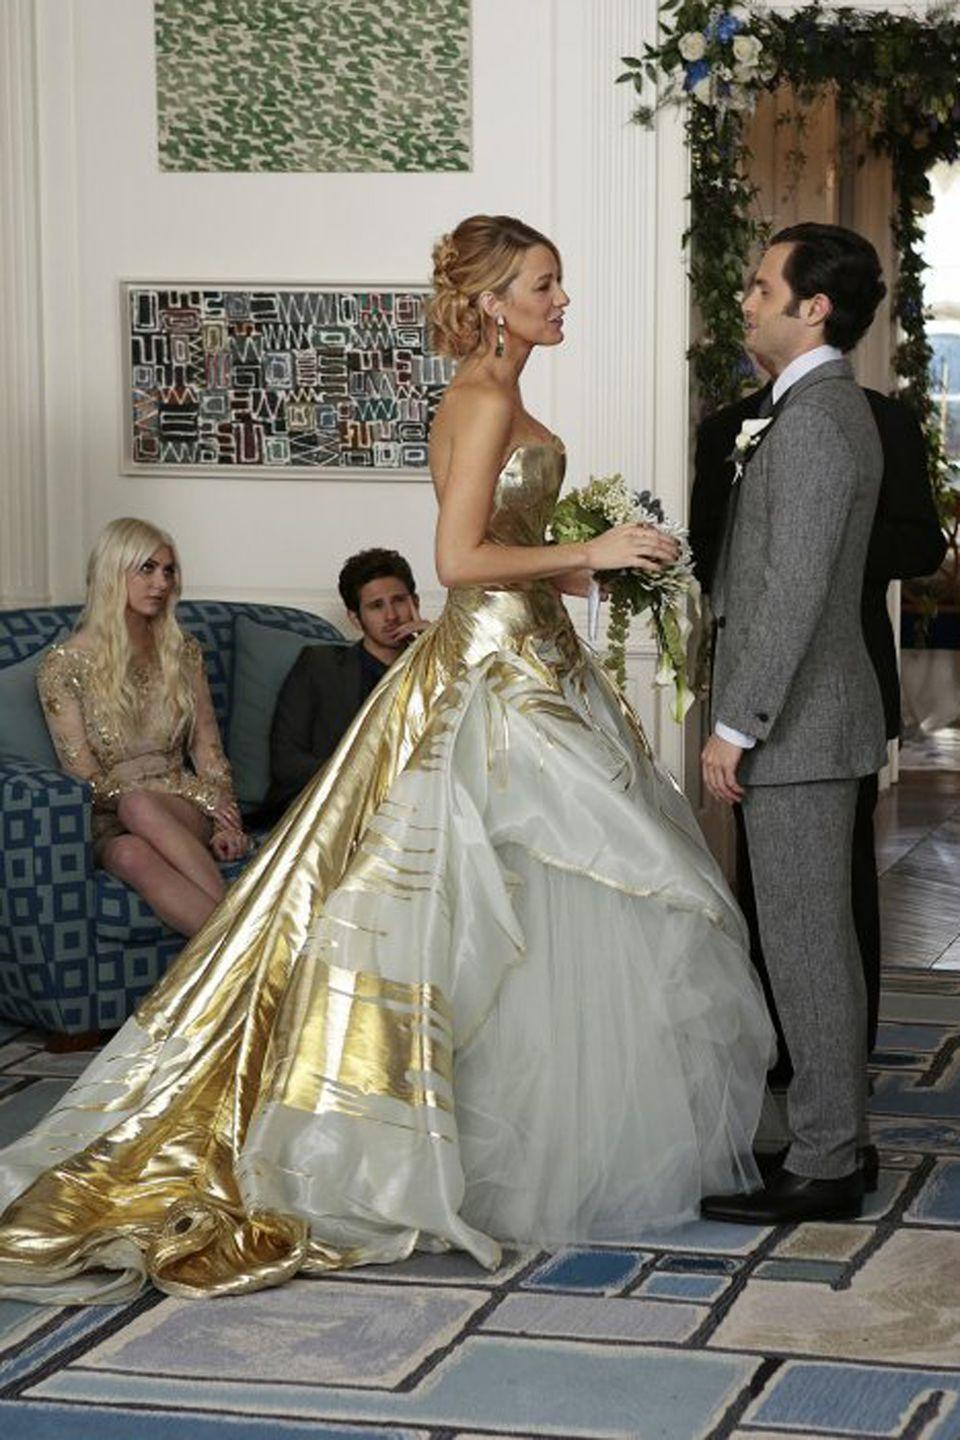 "<p>Following in B's footsteps, Serena also got hitched to none other than Dan, who was revealed as the show's titular character in the series finale. She opted for a strapless gold, metallic, and white tulle dress from <a href=""http://www.elleuk.com/fashion/celebrity-style/articles/g5328/blake-lively-weds-in-gold-georges-chakra/"" rel=""nofollow noopener"" target=""_blank"" data-ylk=""slk:designer Georges Chakra"" class=""link rapid-noclick-resp"">designer Georges Chakra</a> in the final episode.</p>"